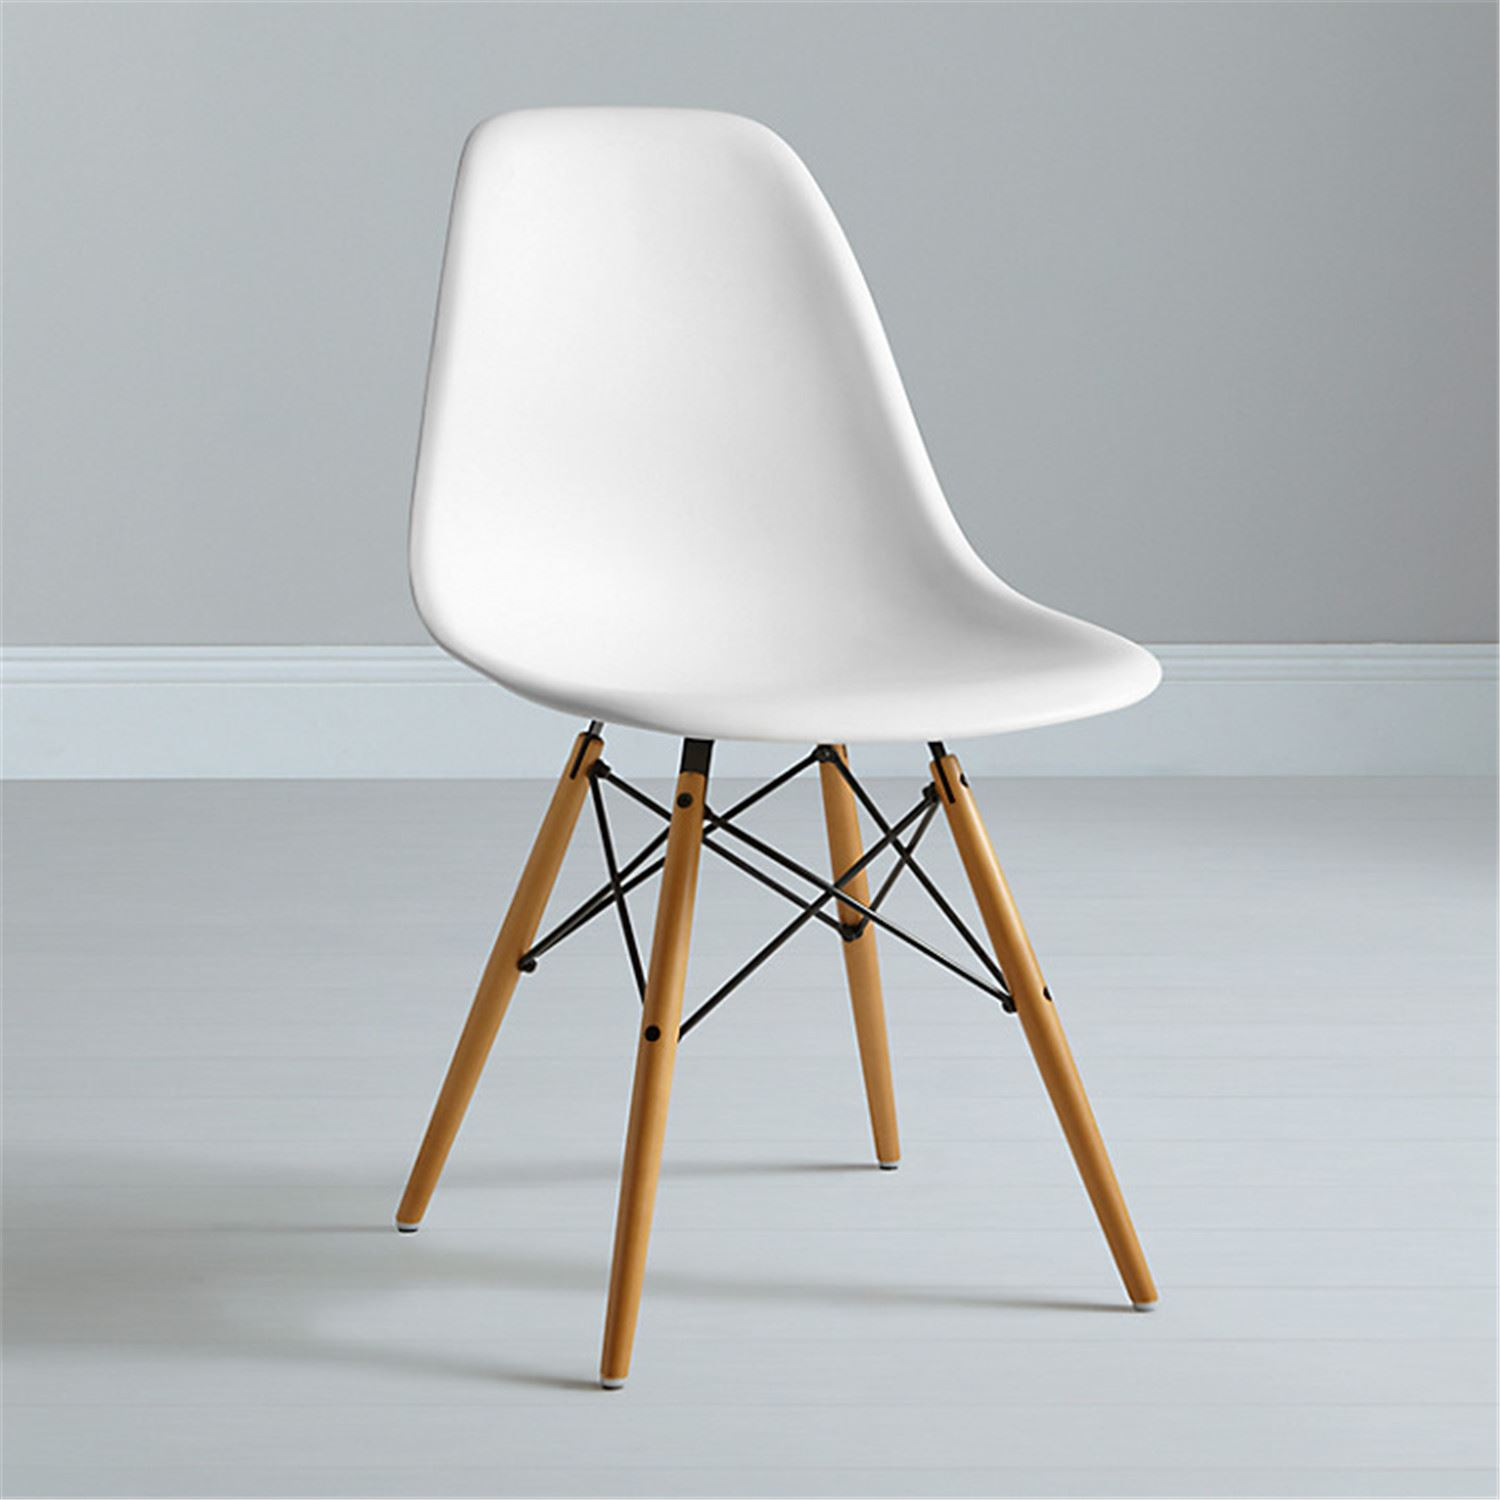 Charles Ray Eames Eiffel Inspired DSW Side Dining Room fice